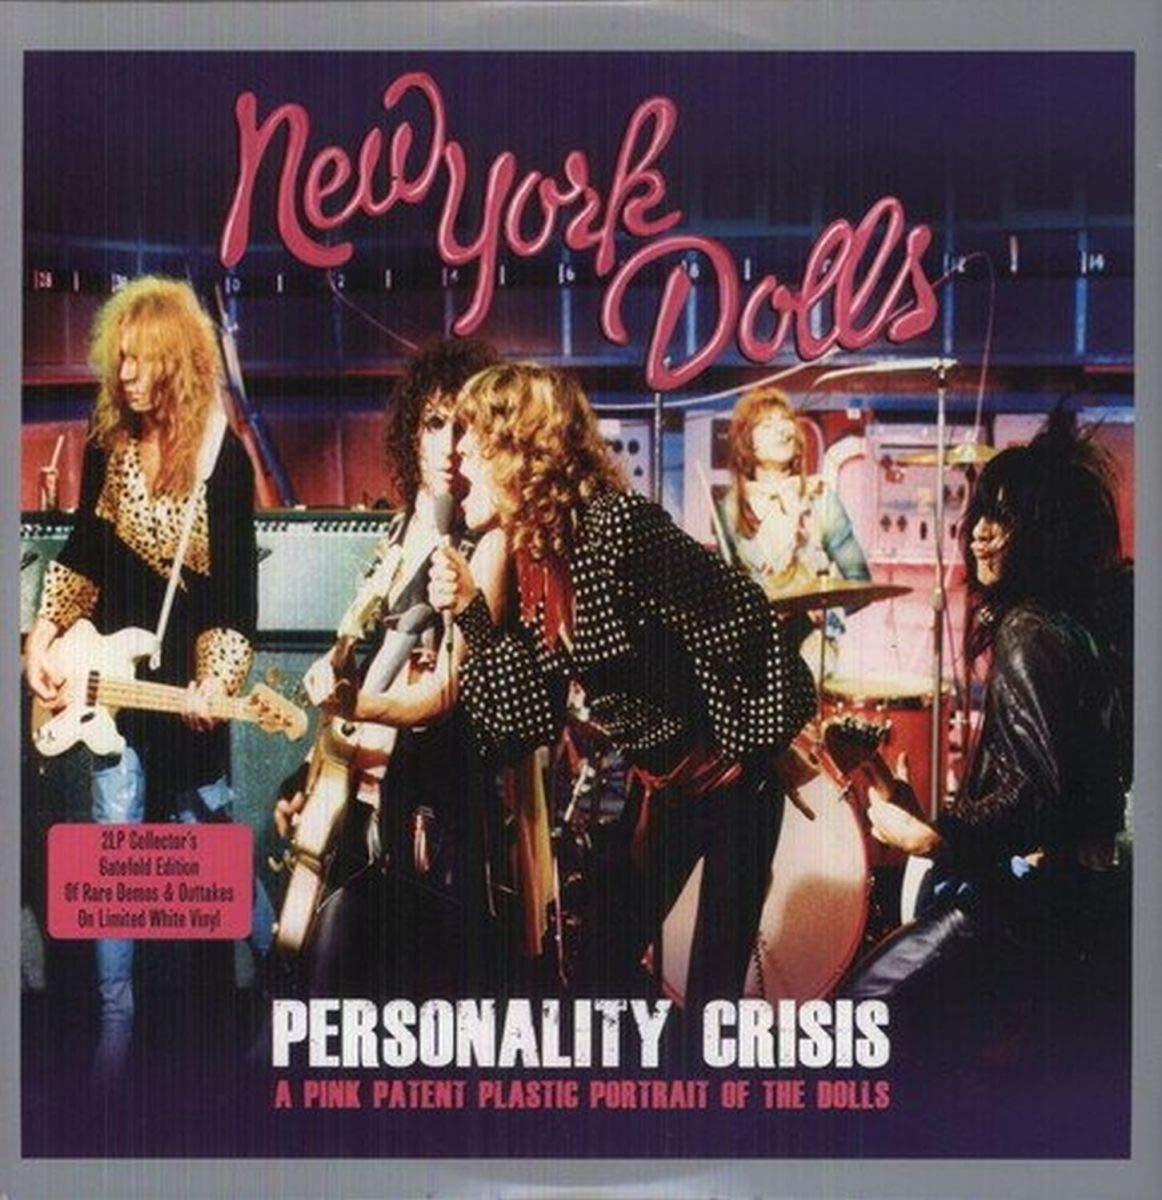 New York Dolls – Personality Crisis